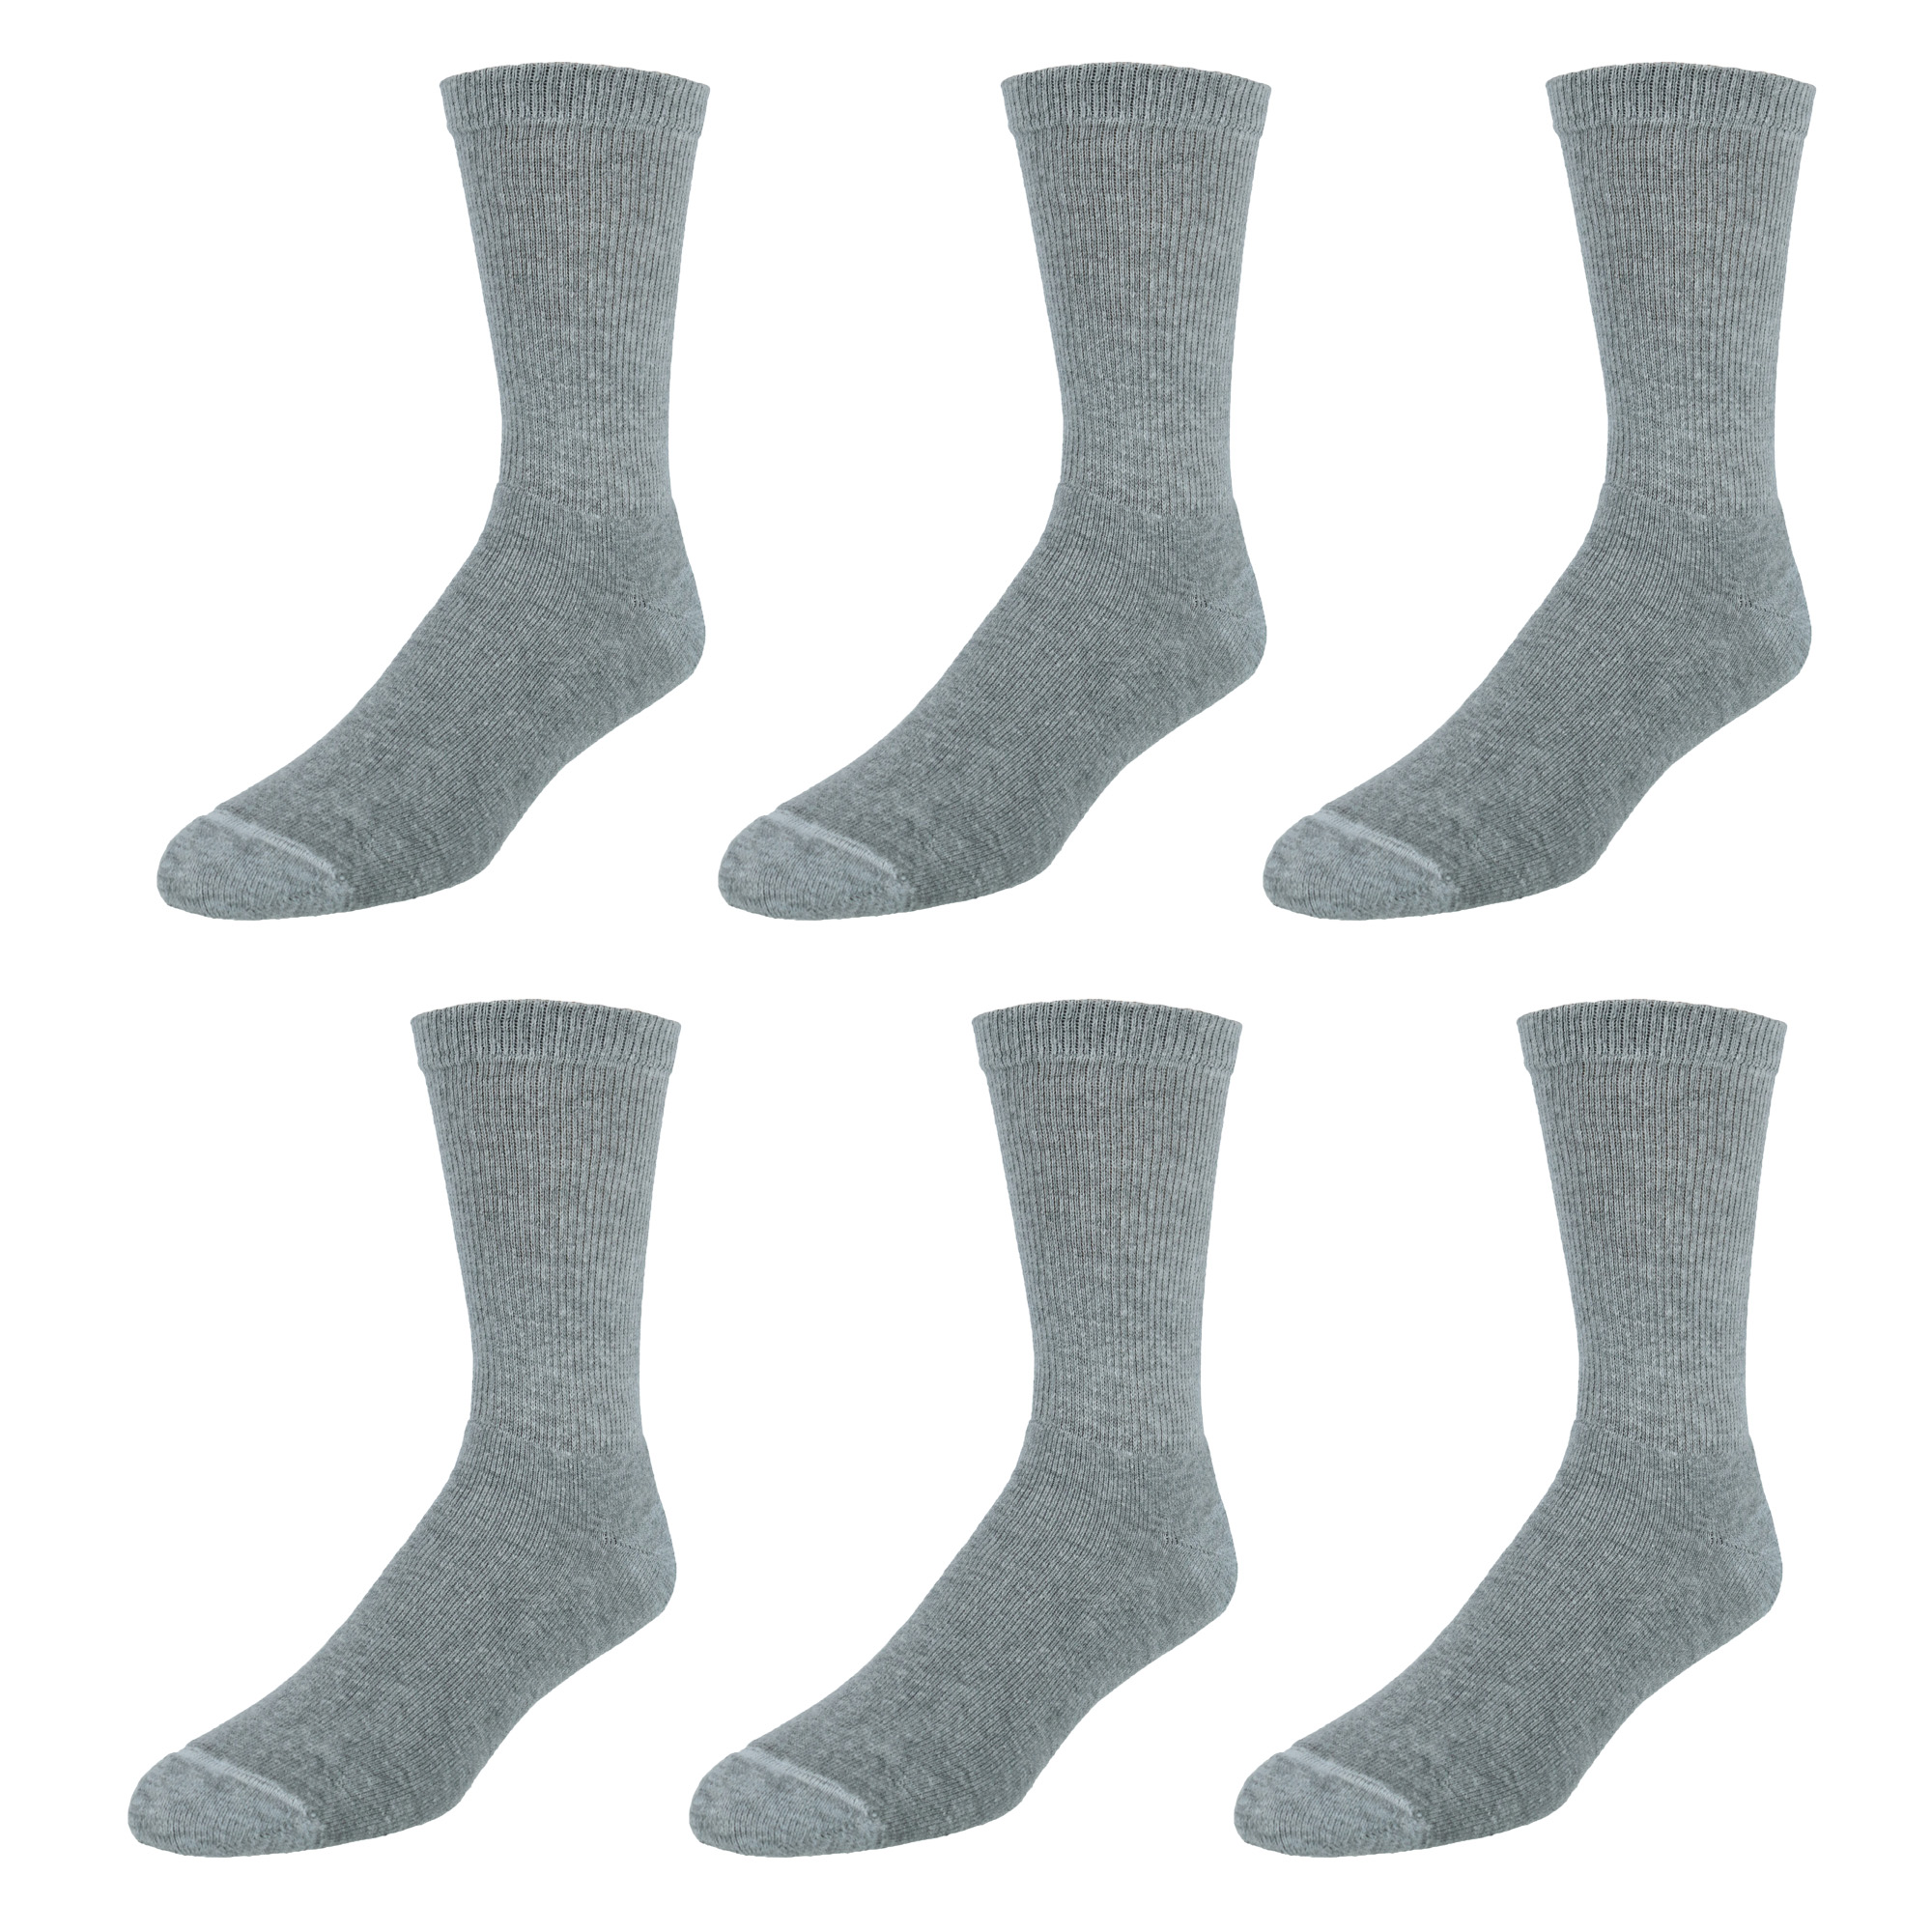 thumbnail 5 - New-Hanes-Men-039-s-Ultimate-ComfortSoft-Cotton-Blend-Crew-Casual-Socks-6-Pairs